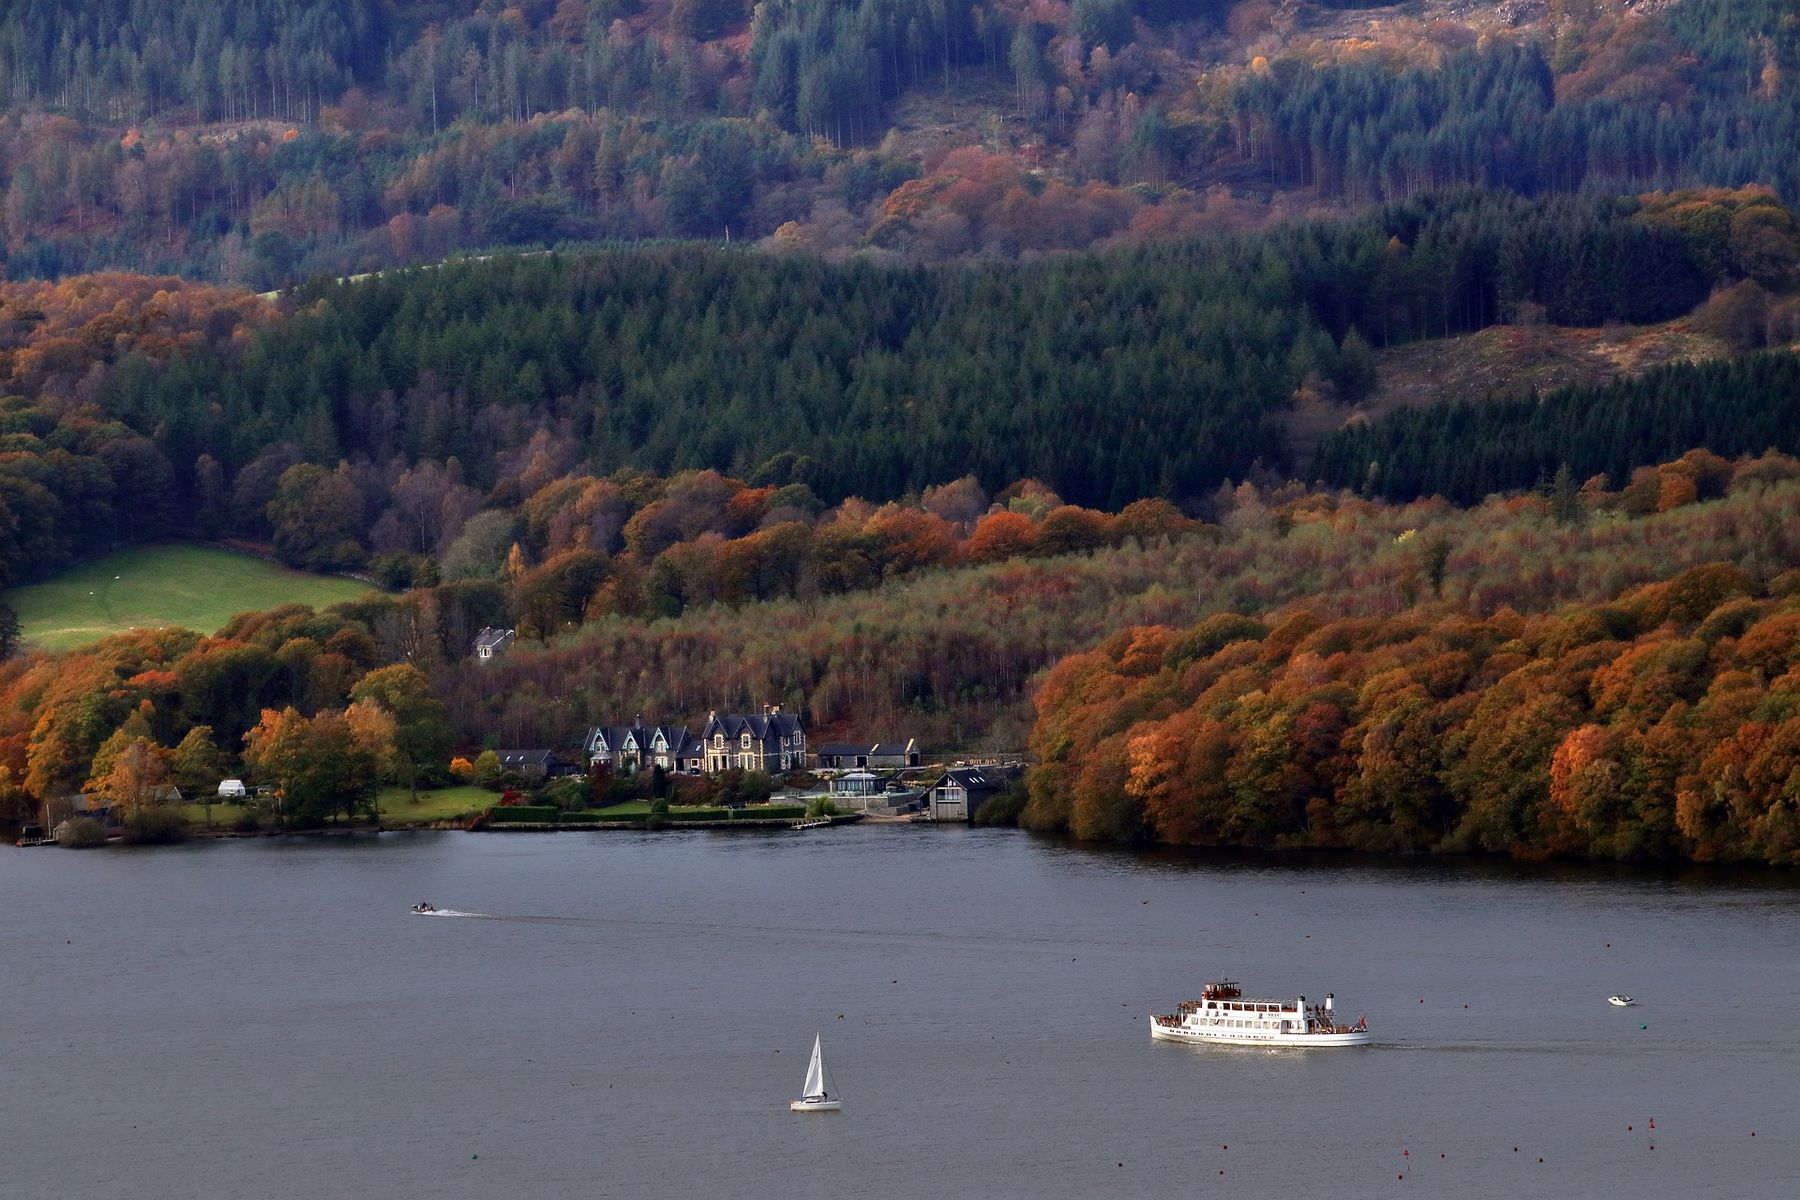 Boats sailing on Lake Windermere, with autumn leaves on the shore